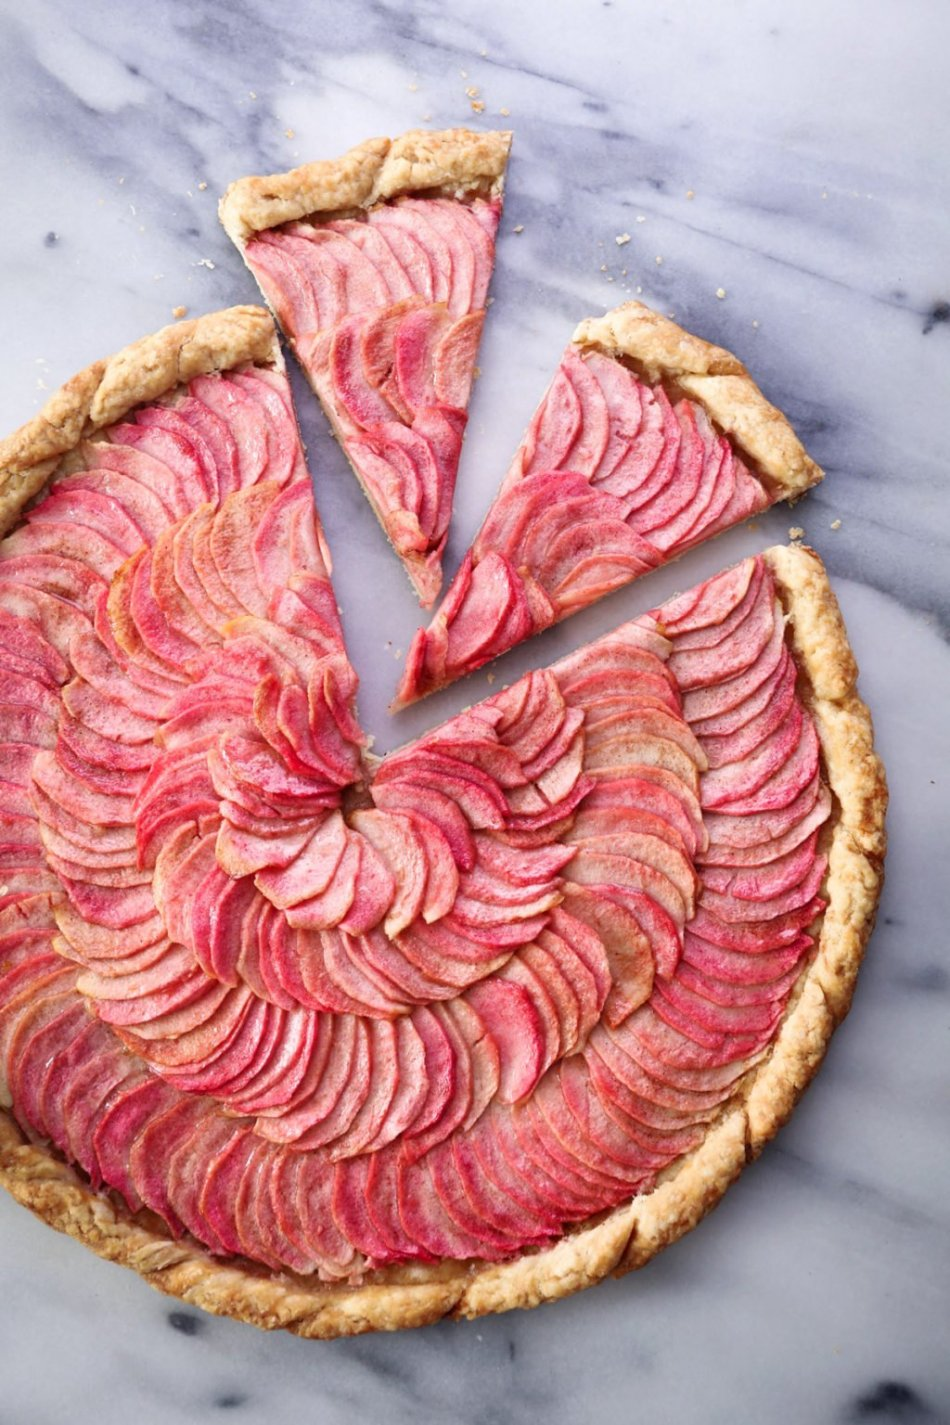 Simple Apple Galette | Vegan friendly and refined sugar free with gluten-free option.